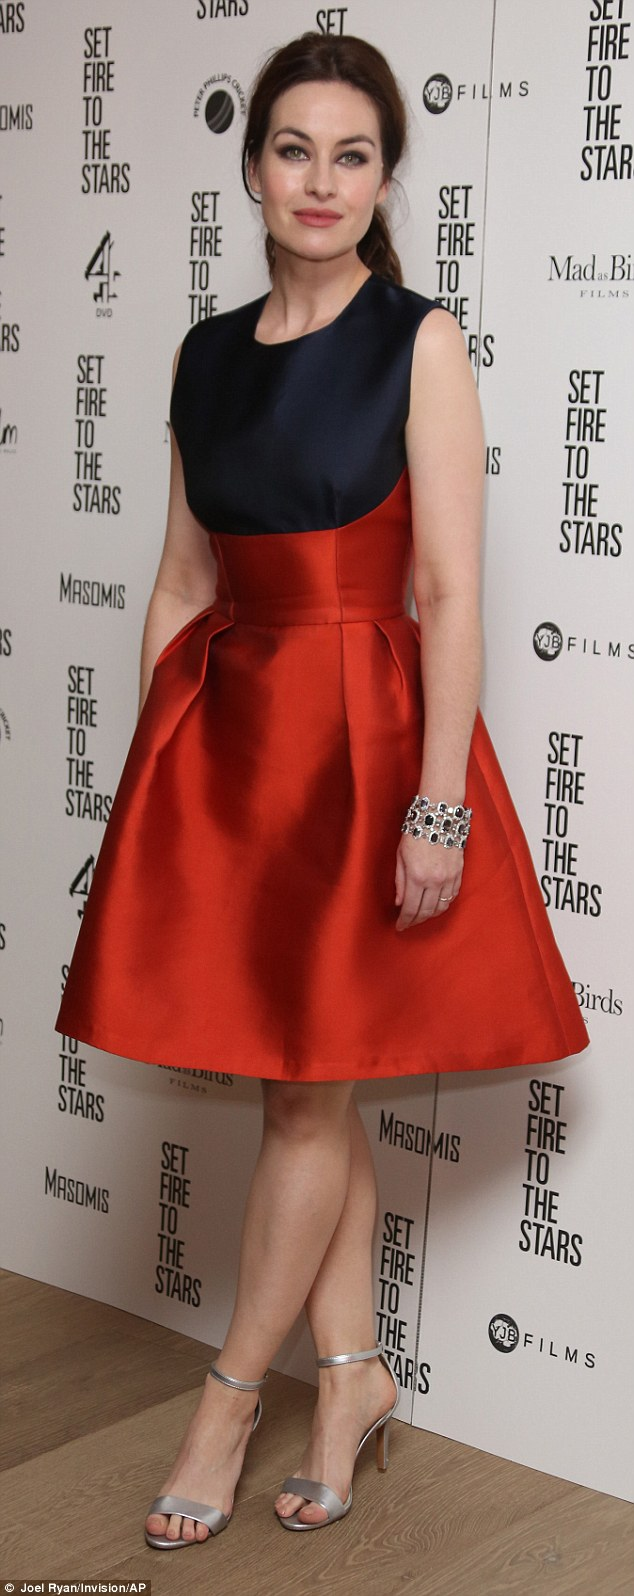 1414571557792 Image galleryImage Actress Maimie McCoy arri Maimie McCoy in Sophia Kah at the Set Fire to the Stars London Premiere